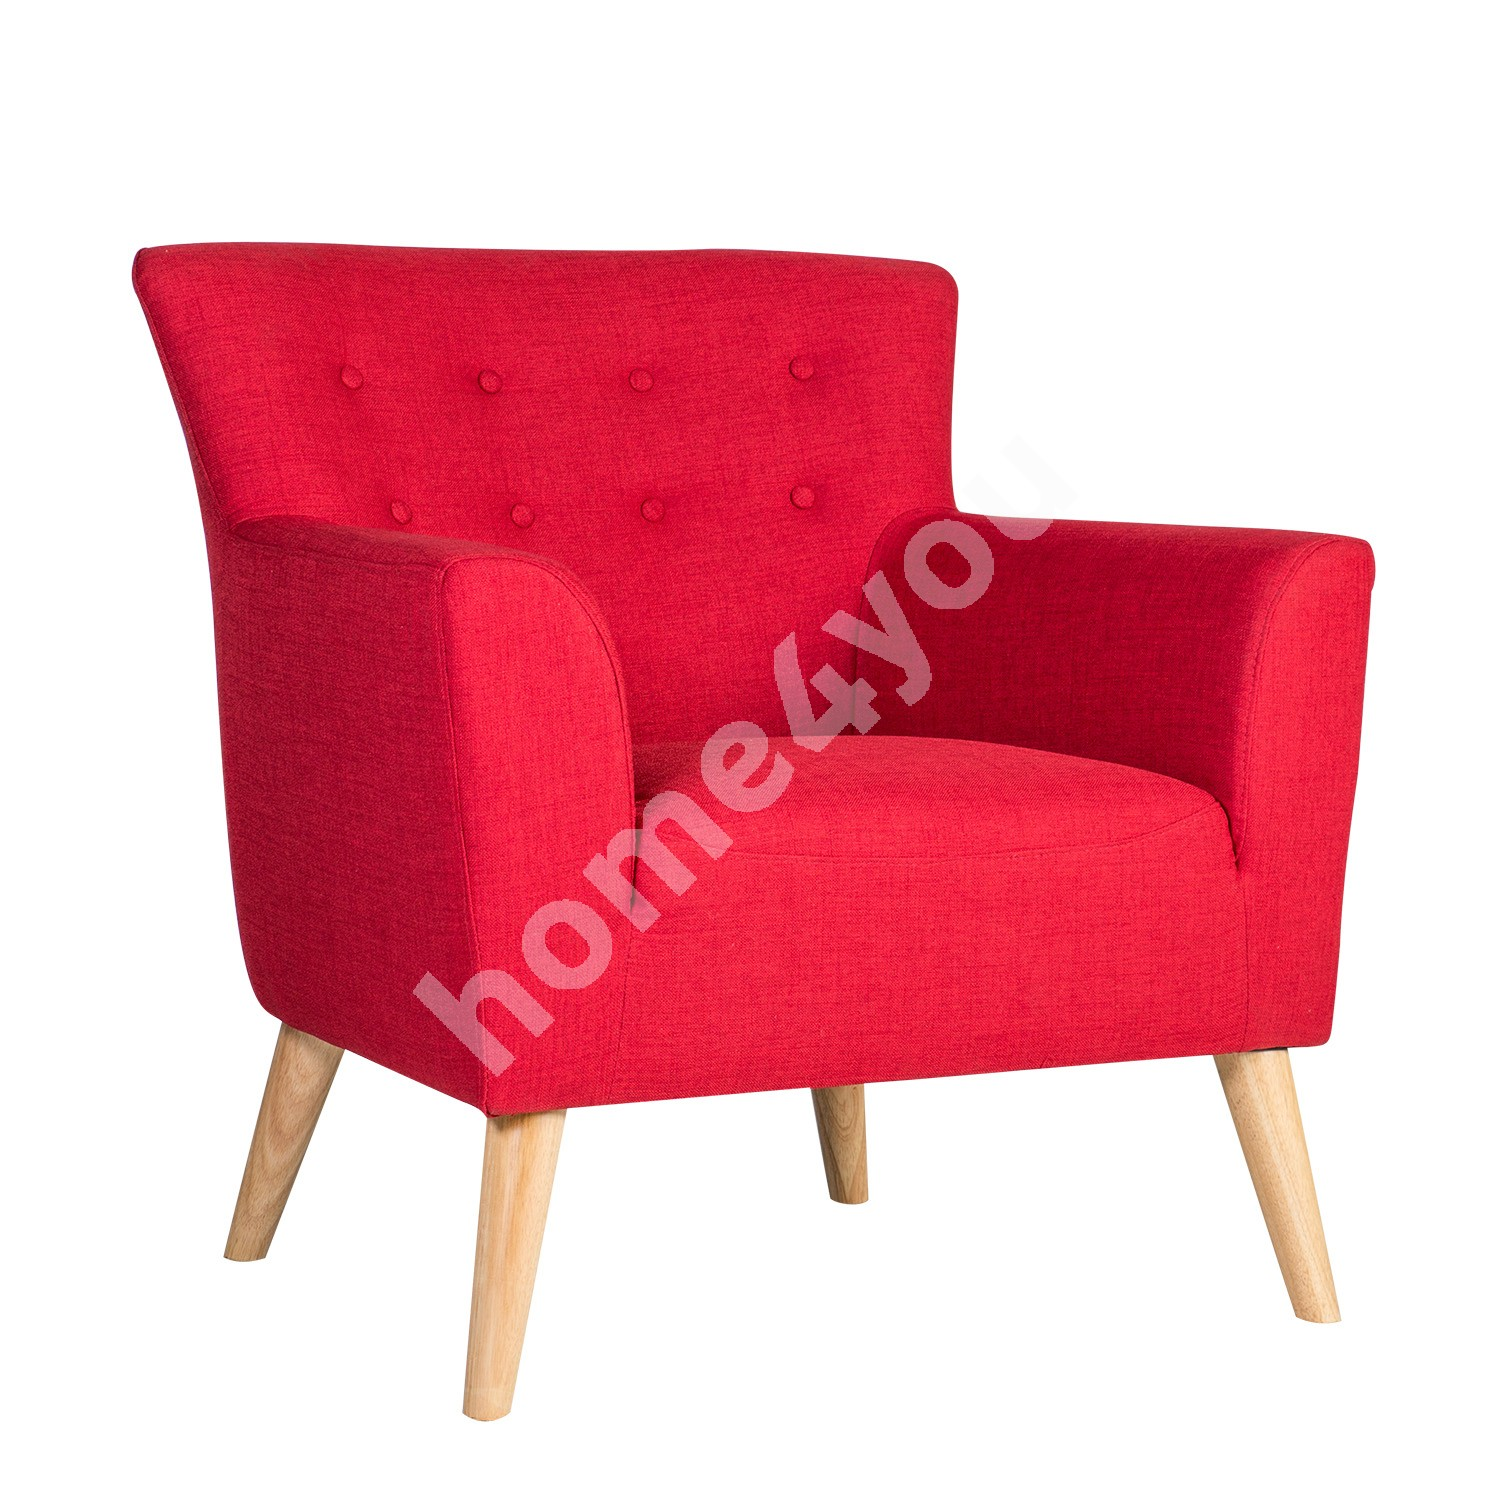 Arm chair MOVIE 83x76xH83cm, cover material: fabric, color: red